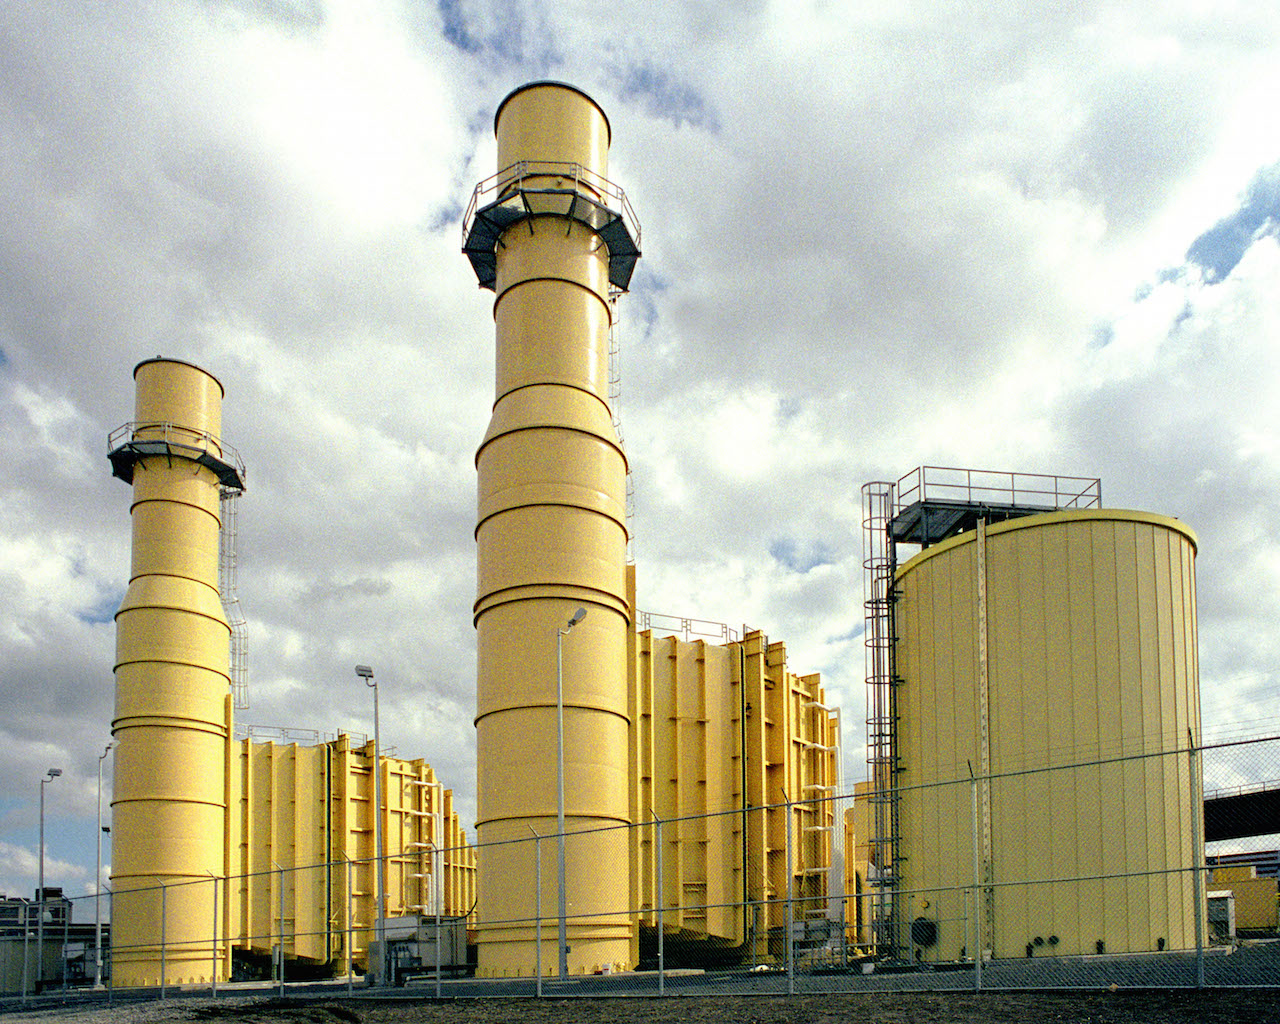 Activists urge state to close power plant